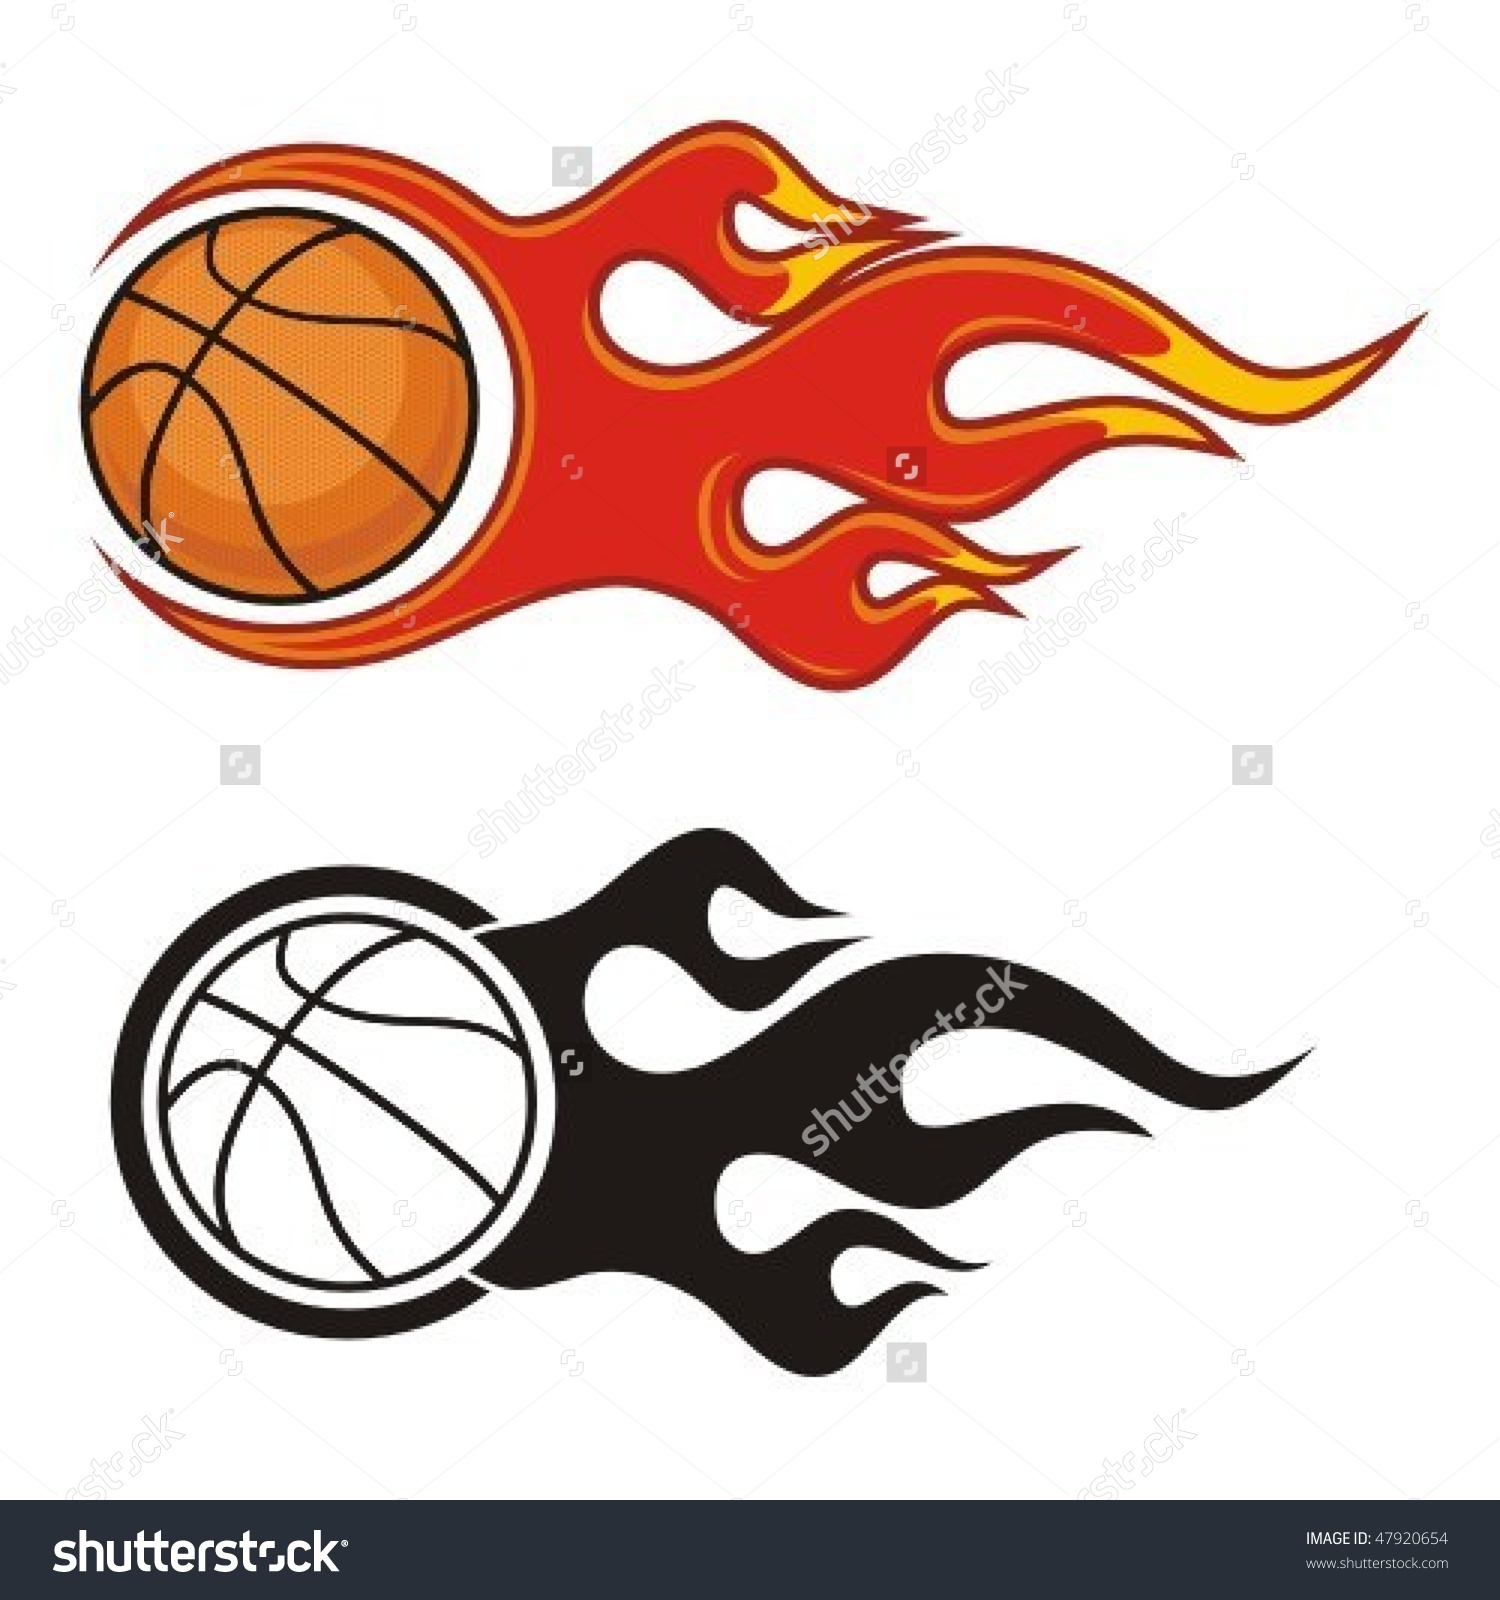 Flaming Basketball Ball Vector Illustration Stock Vector 47920654.